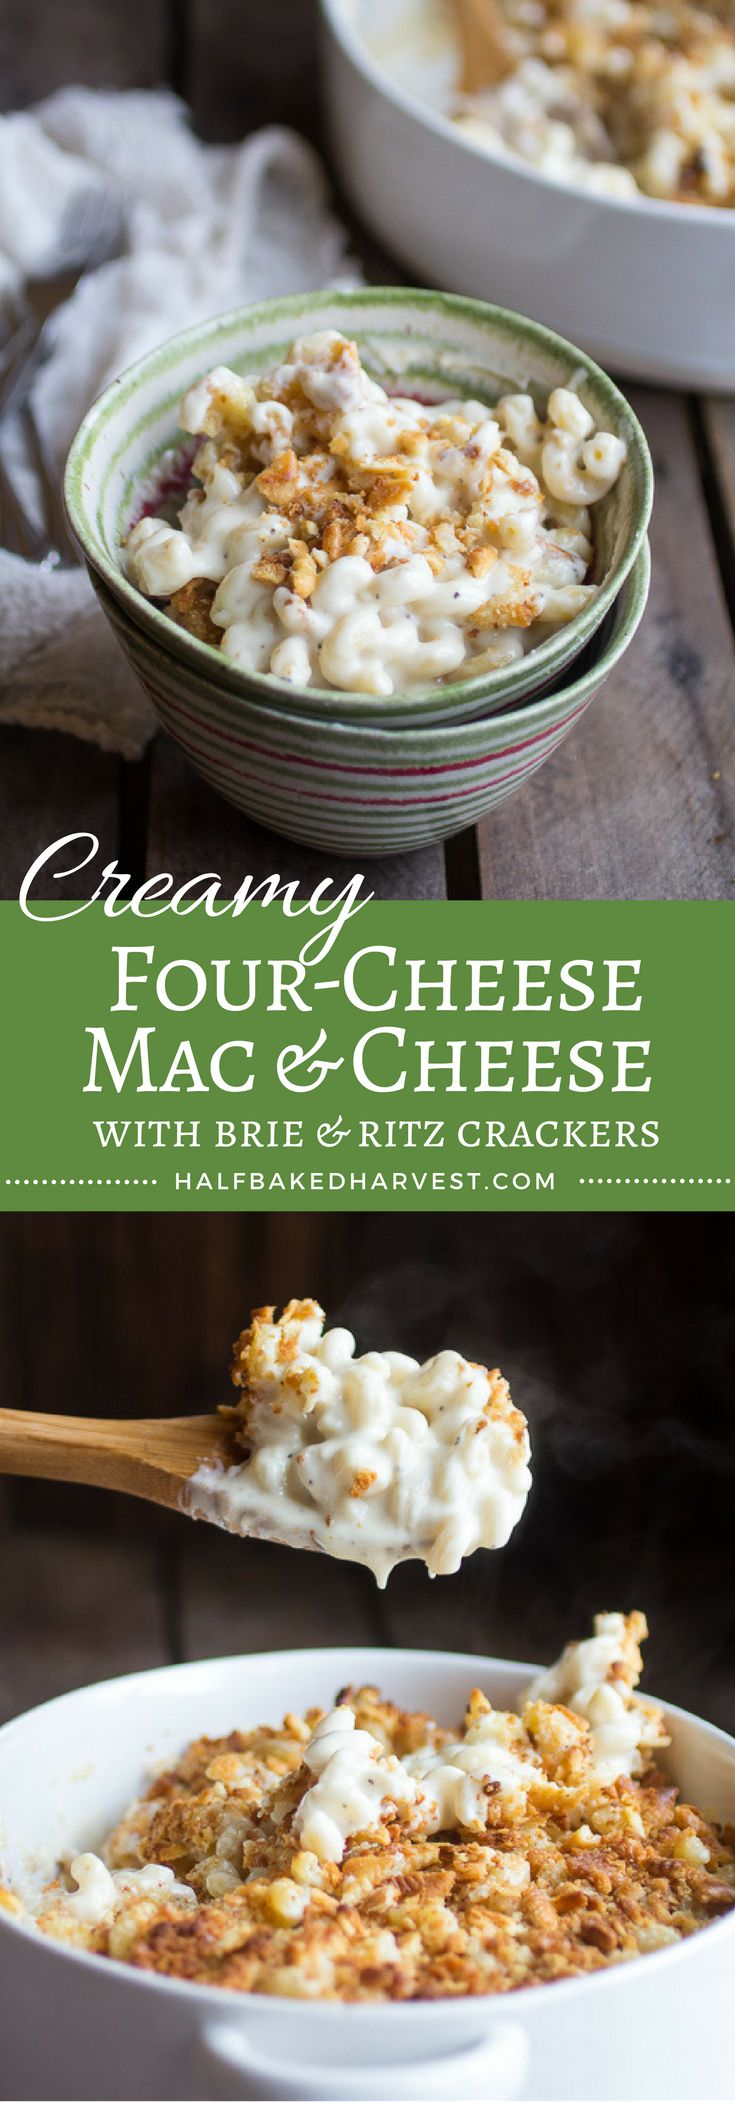 Creamy Four-Cheese Mac & Cheese with Brie and Buttery Ritz Crackers | halfbakedharvest.com @hbharvest